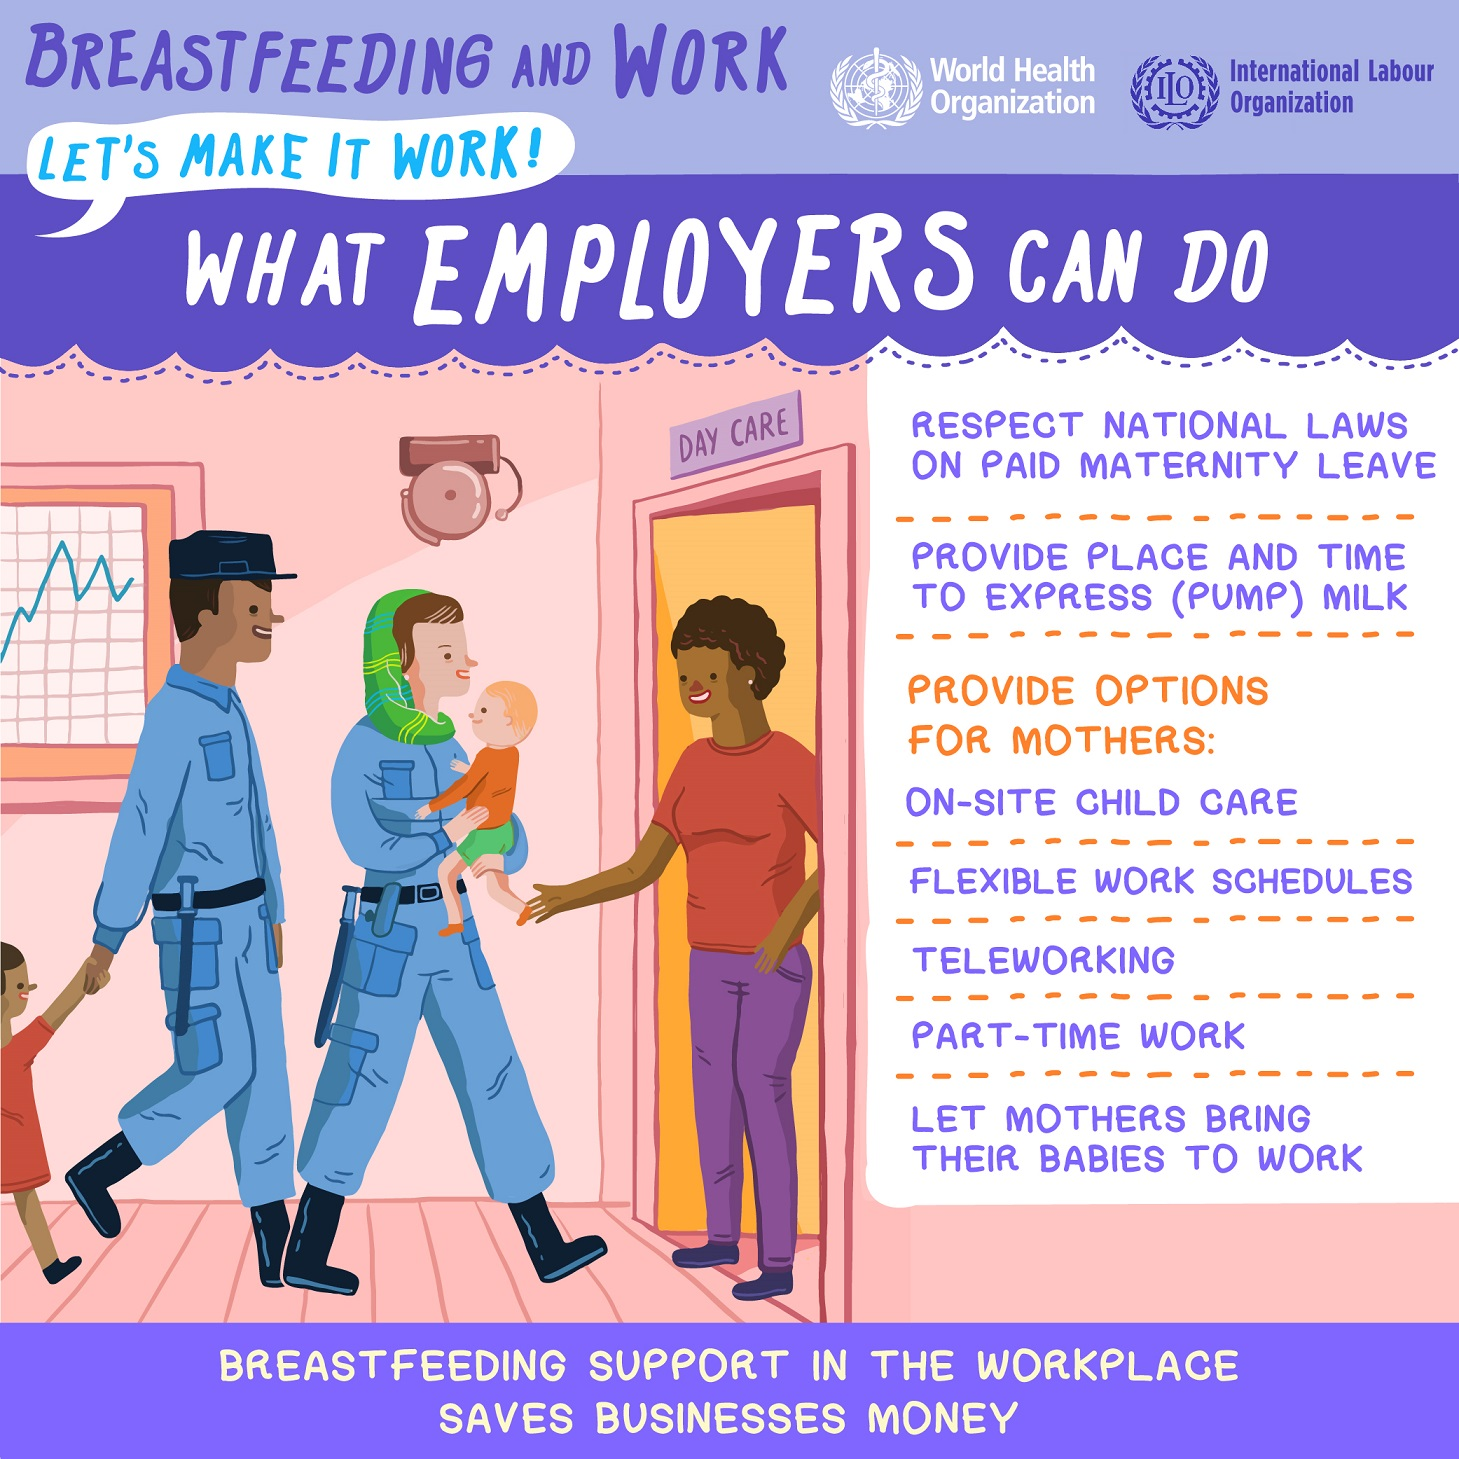 how employer can support breastfeeding